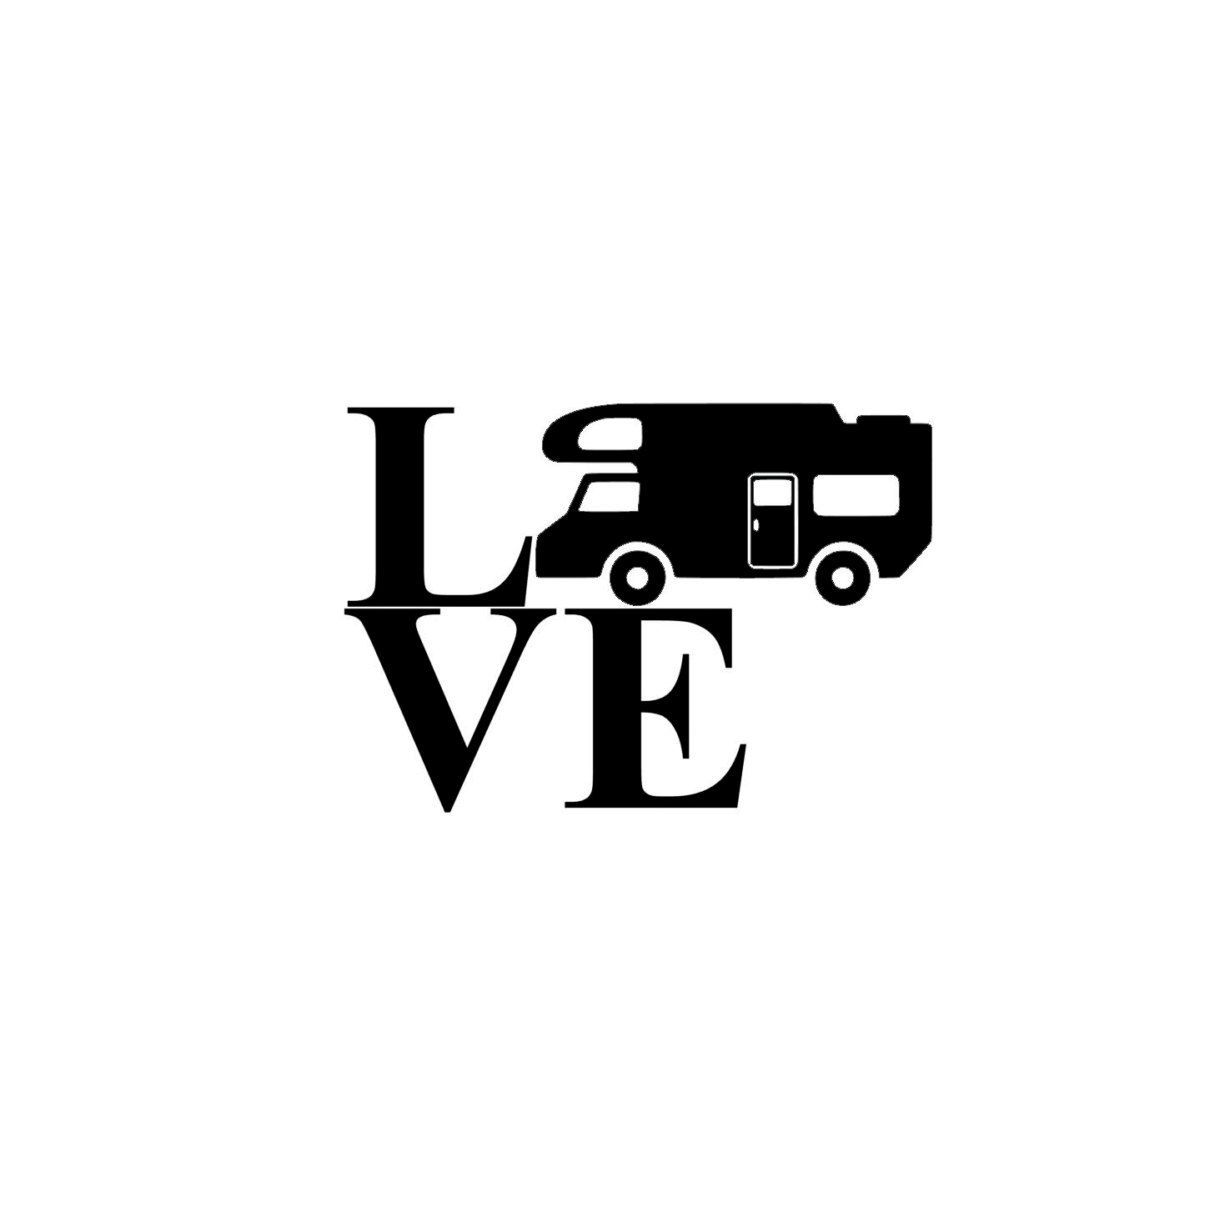 1206x1208 Vinyl Decal, Rv, Class C Camper Silhouette Love Vinyl Decal Can